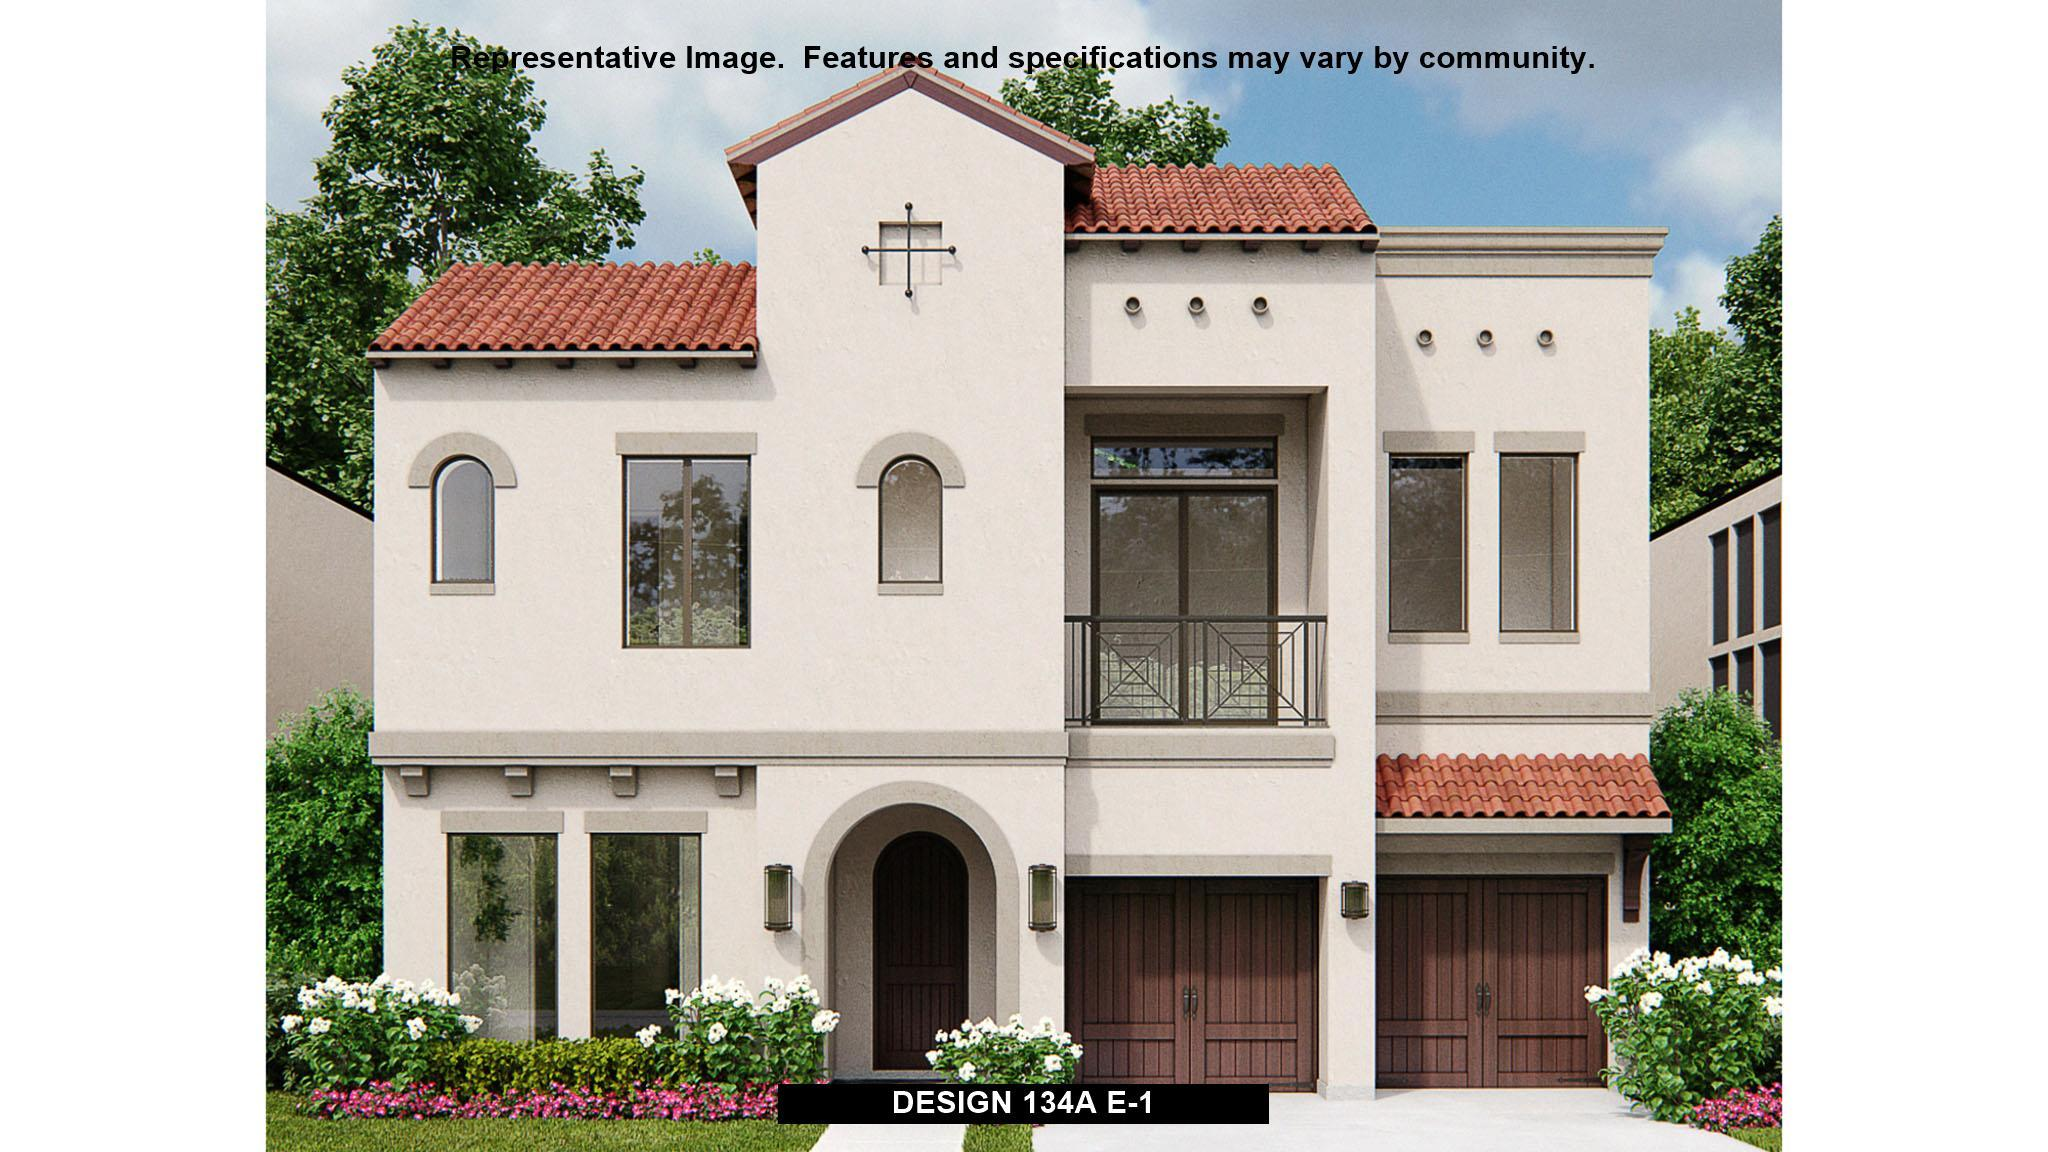 Single Family for Active at Villas At Legacy West - 134a 6121 Echelon Way Plano, Texas 75024 United States